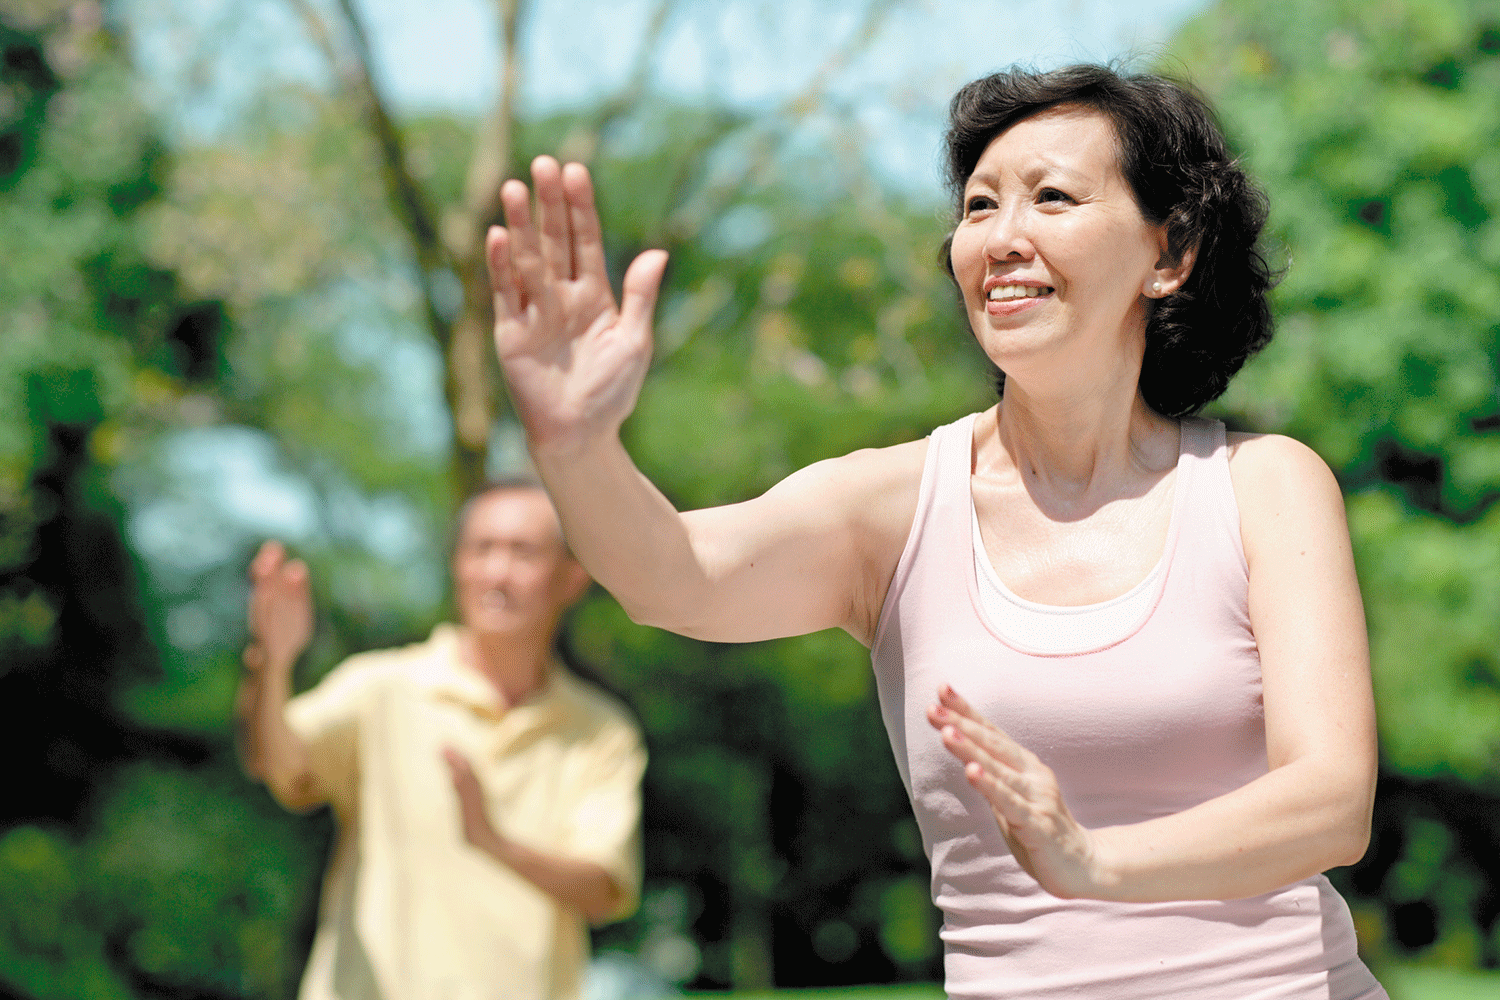 tai-chi-balance-exercise-woman